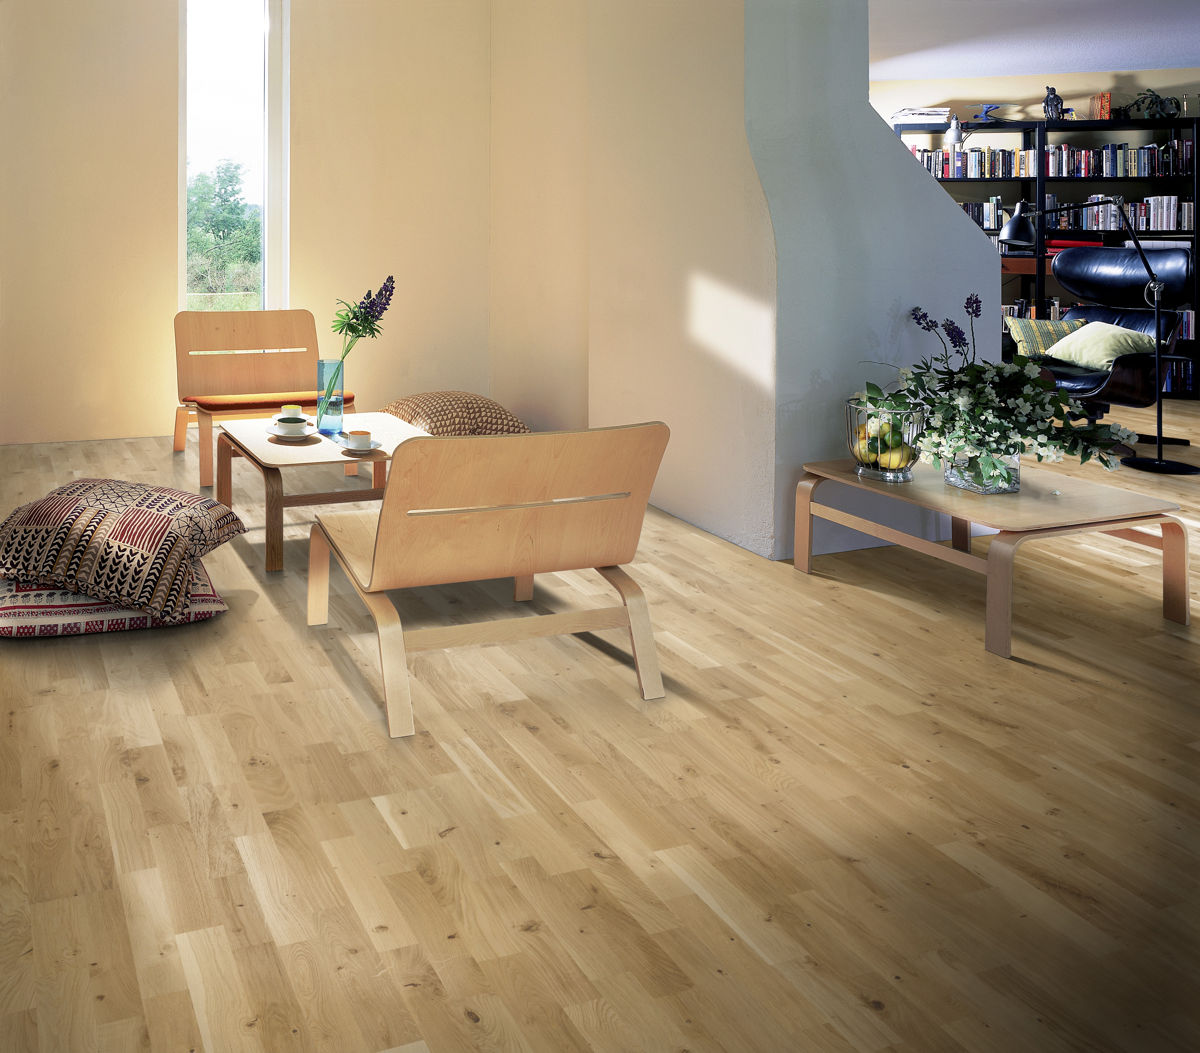 Kahrs Oak Trento Engineered Wood Flooring - Oak Trento Engineered Wood Flooring